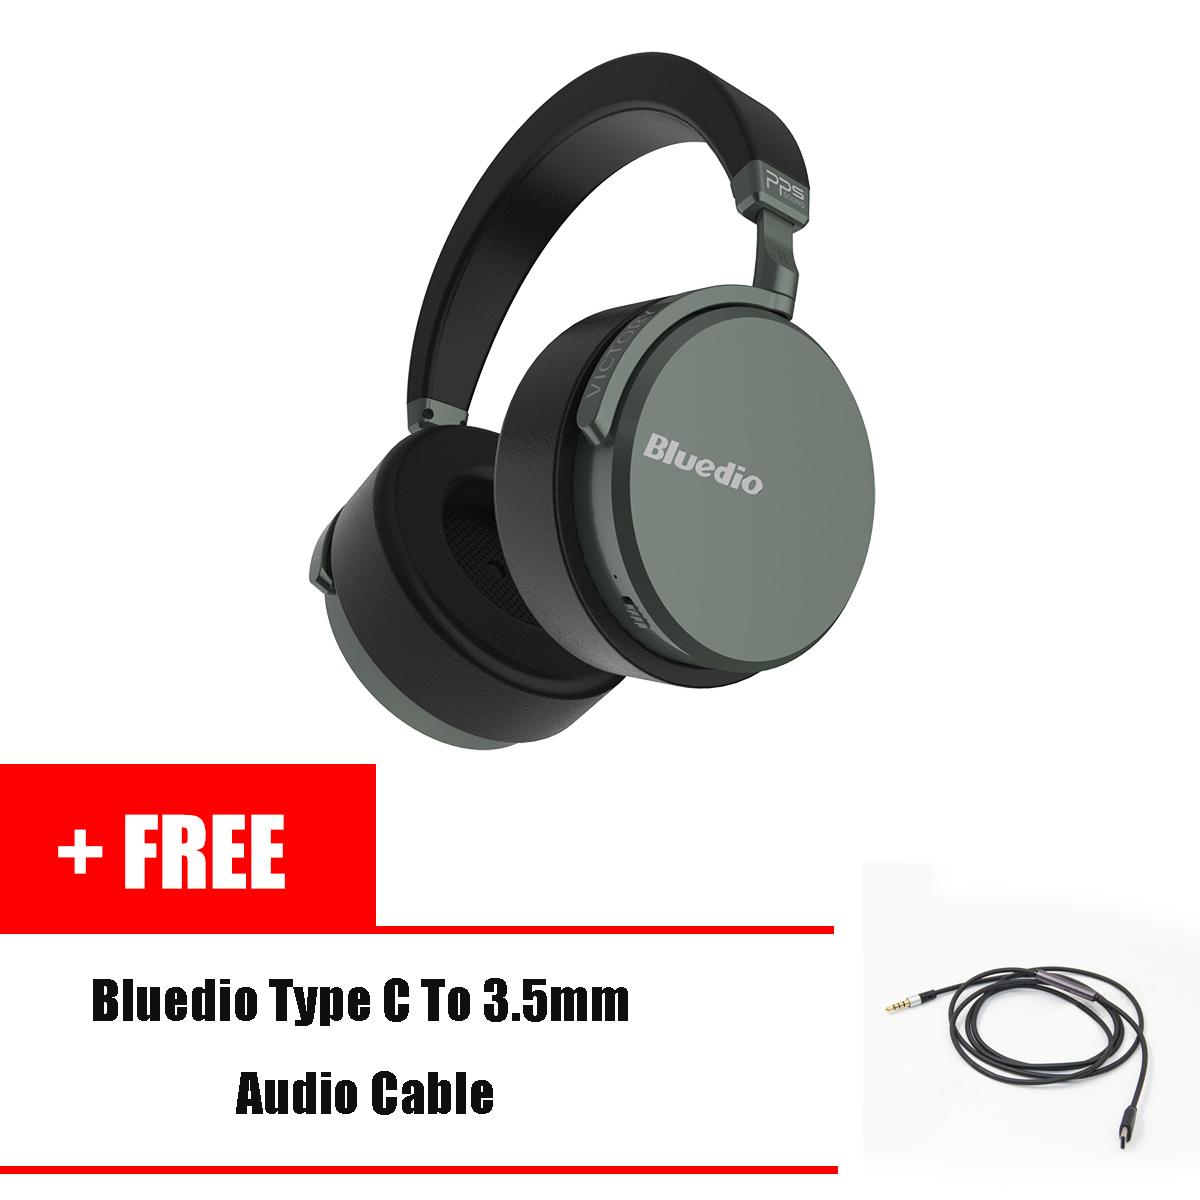 Bluedio V2 Bluetooth headphones Wireless headset PPS12 drivers with  microphone high-end headphone for phone 4acebece6fa4